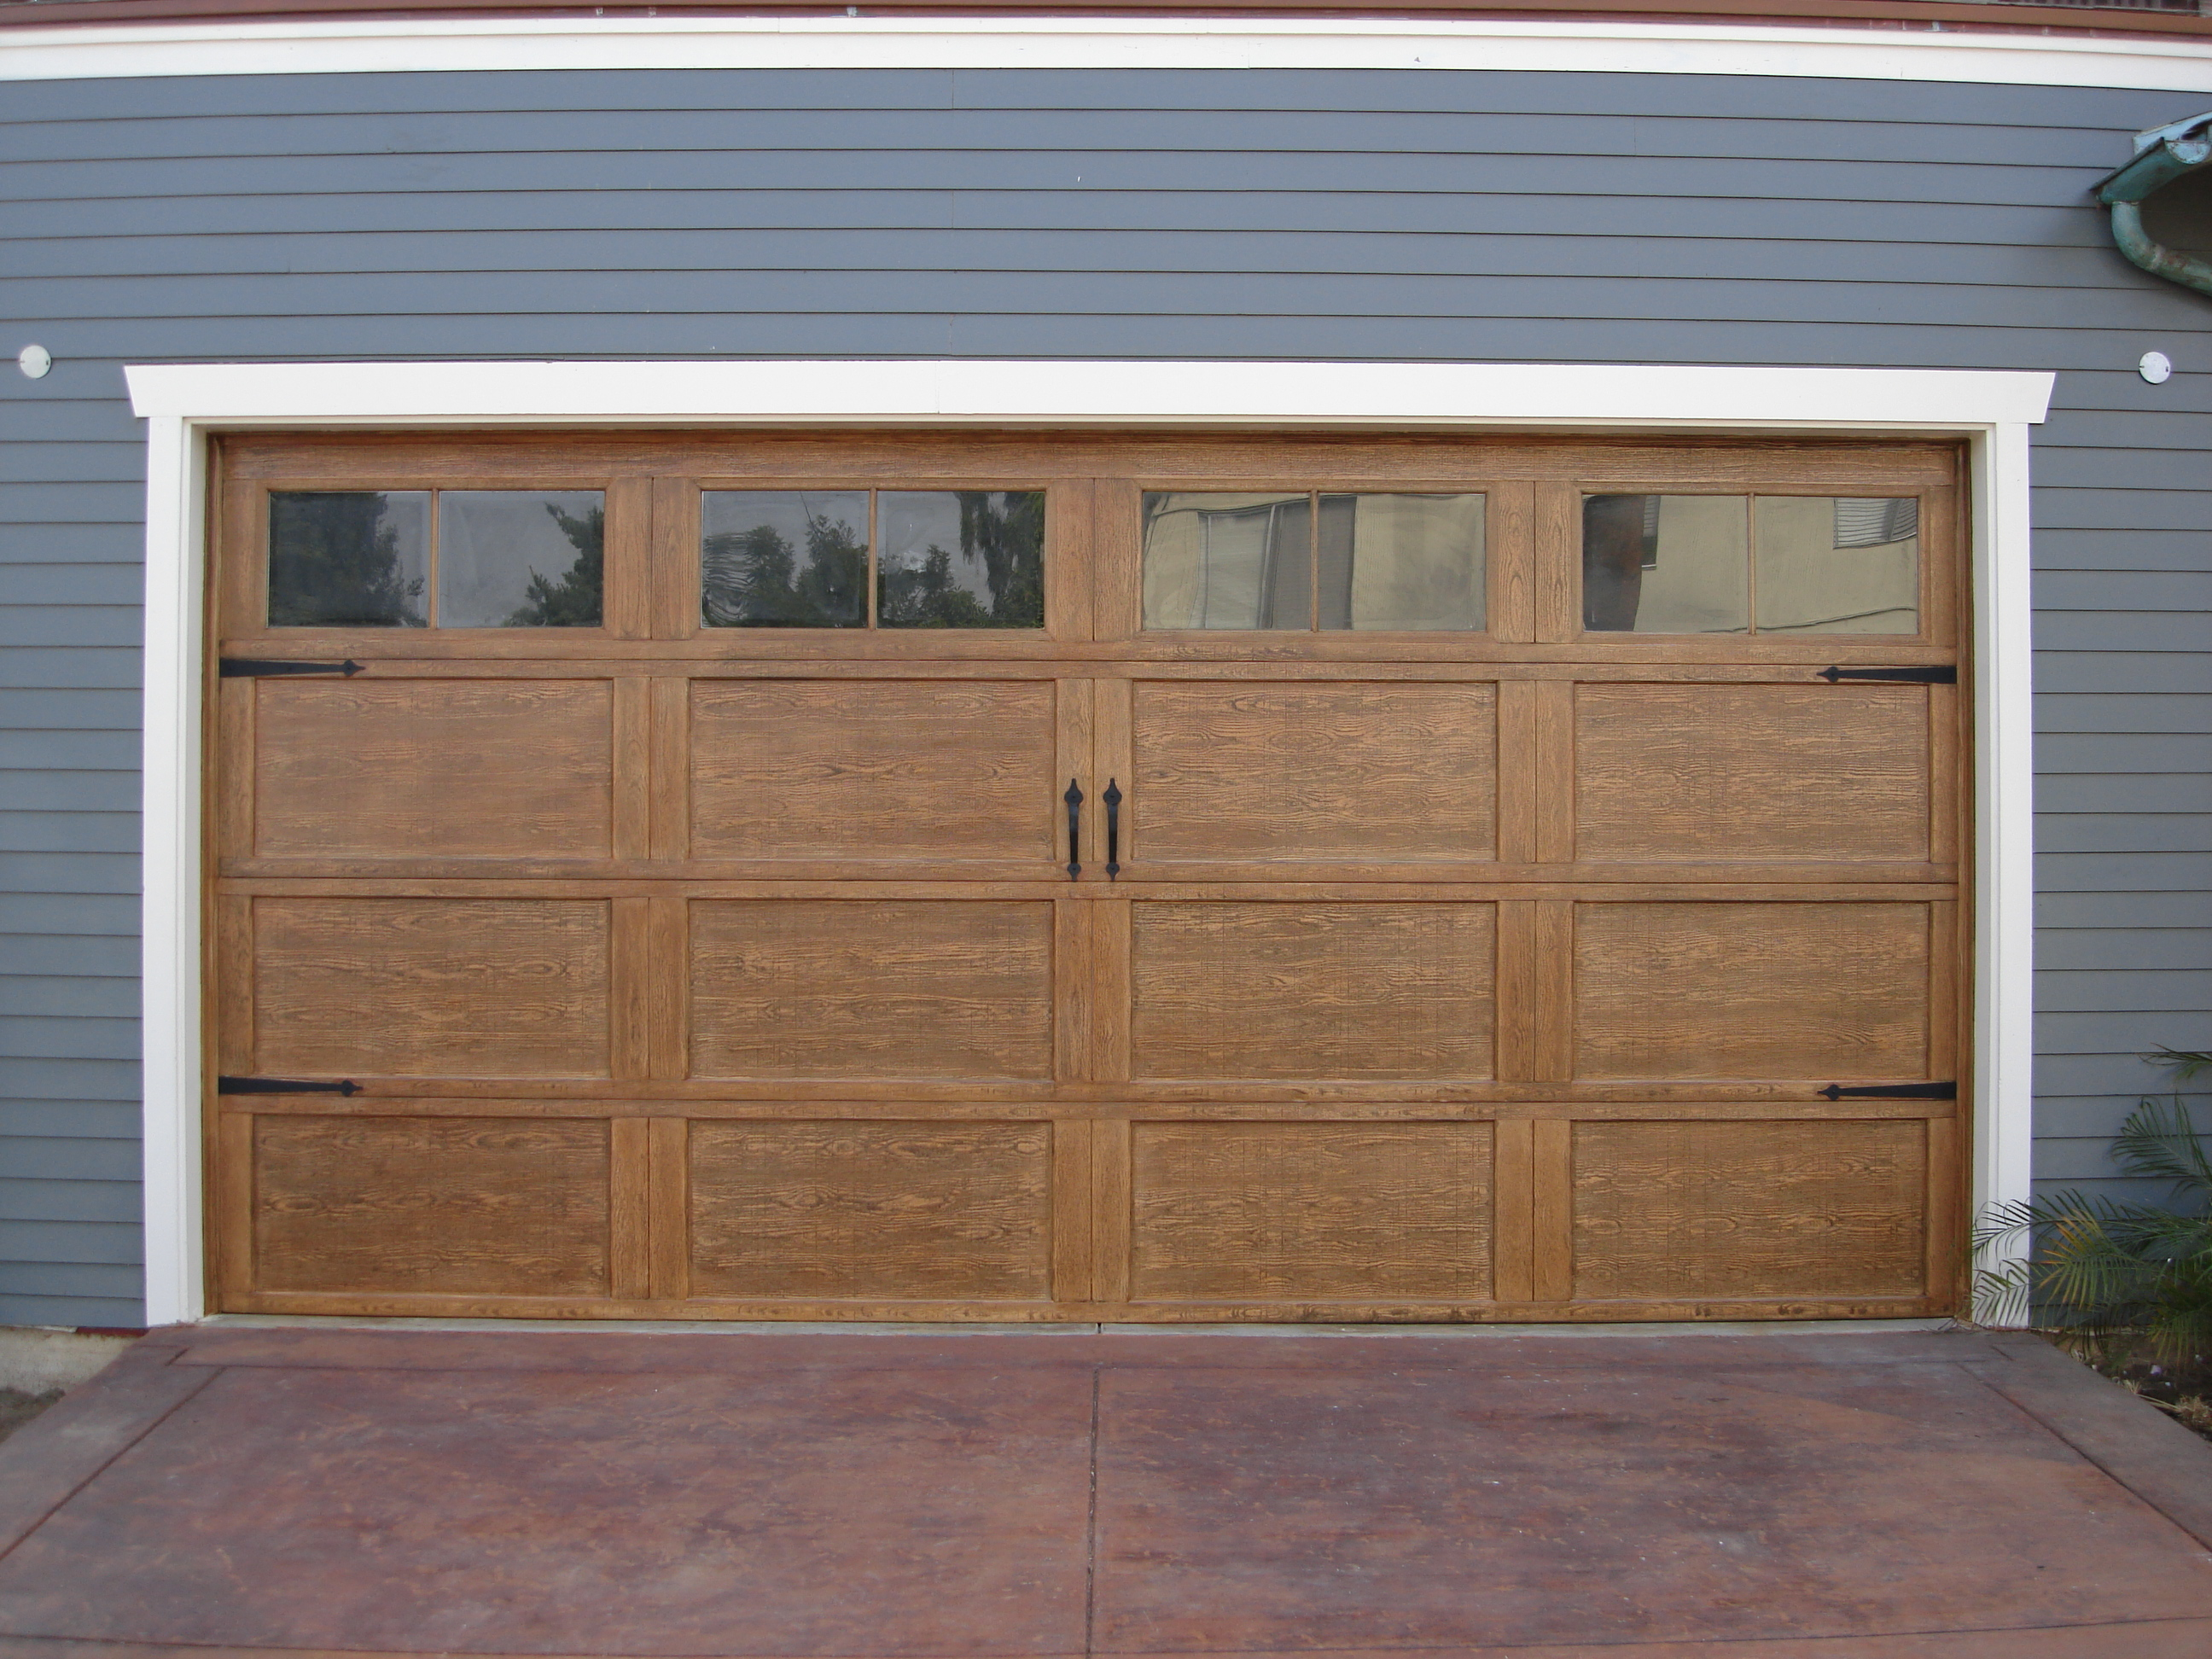 Cashbuild door prices roof tiles prices at cashbuild sc for Wood looking garage doors